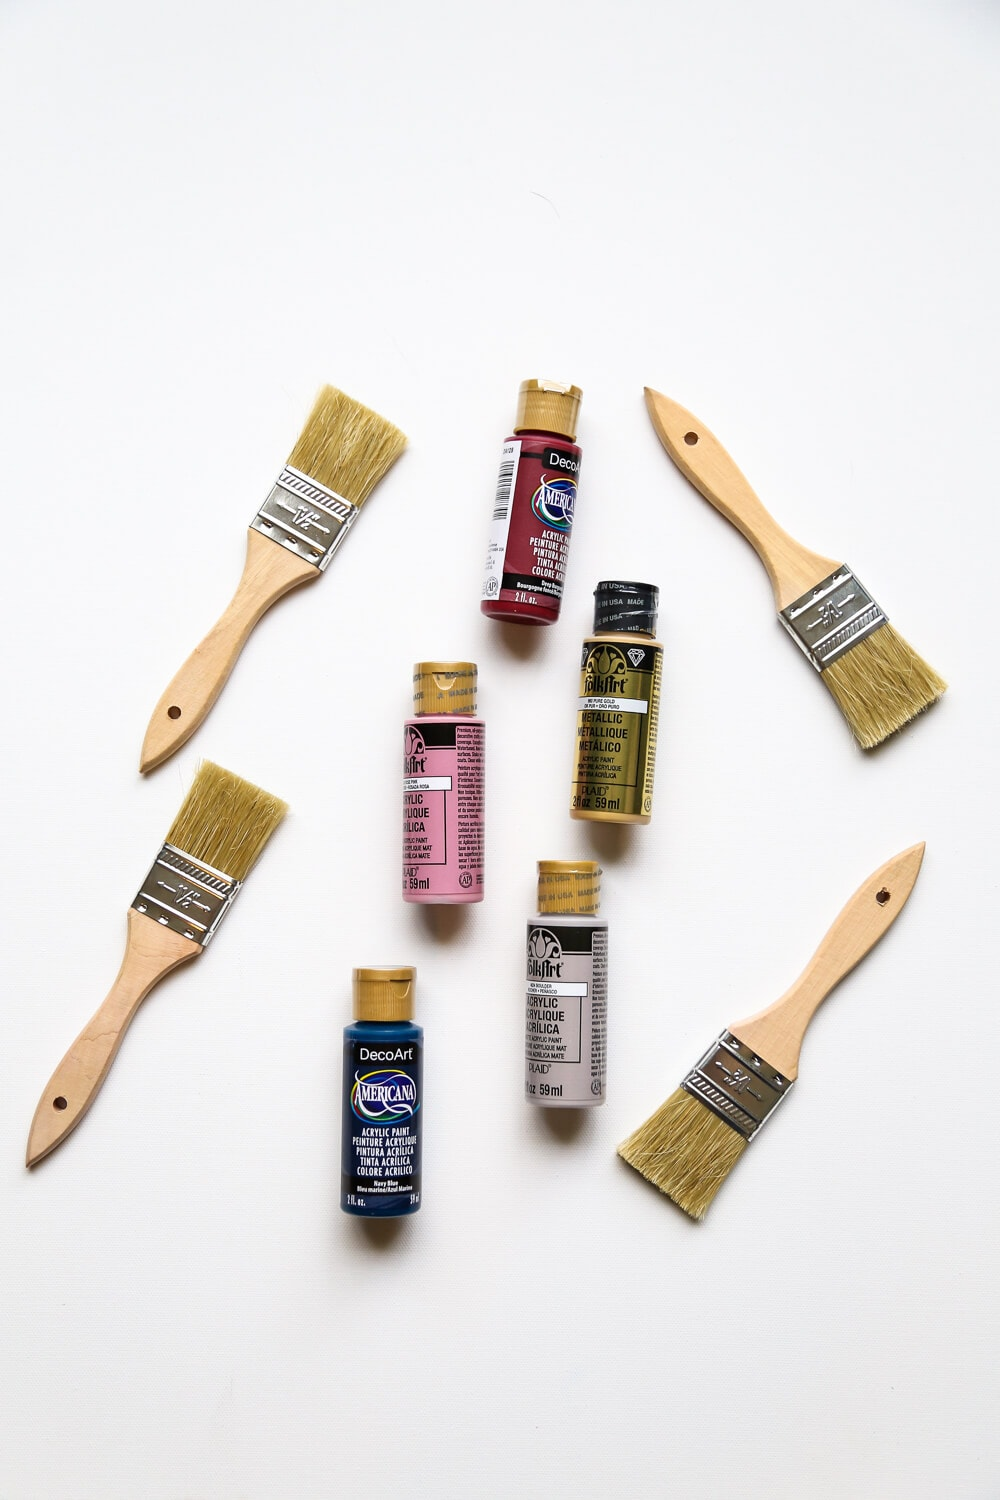 An assortment of paintbrushes and acrylic paints